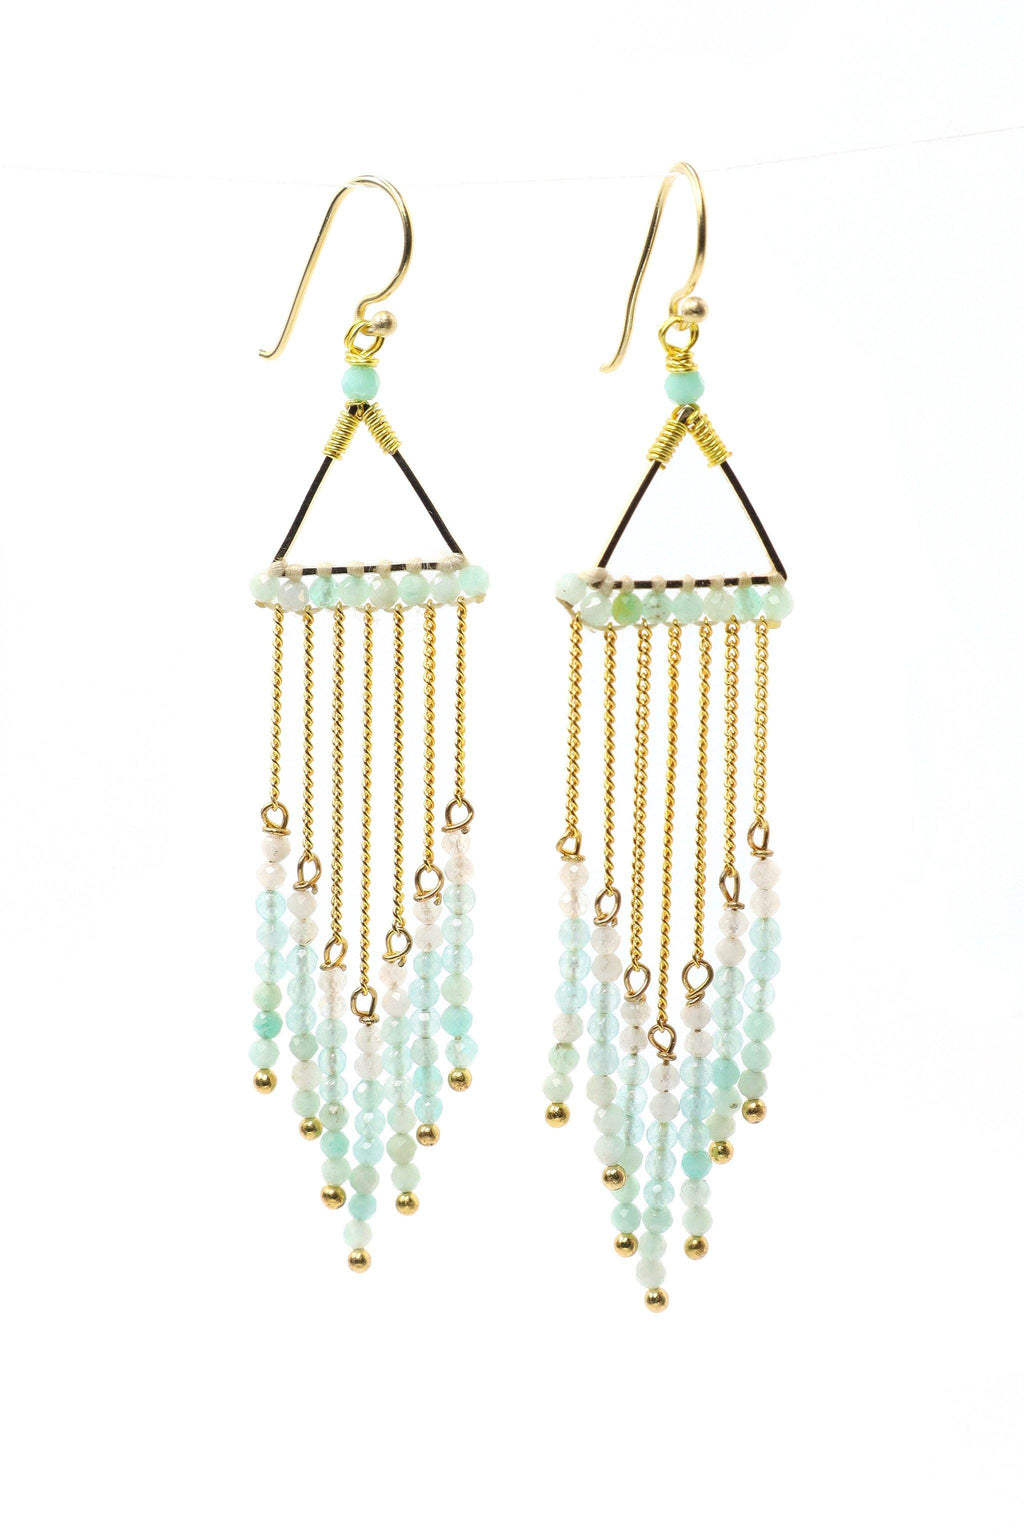 Celeste Earrings - Light Blue